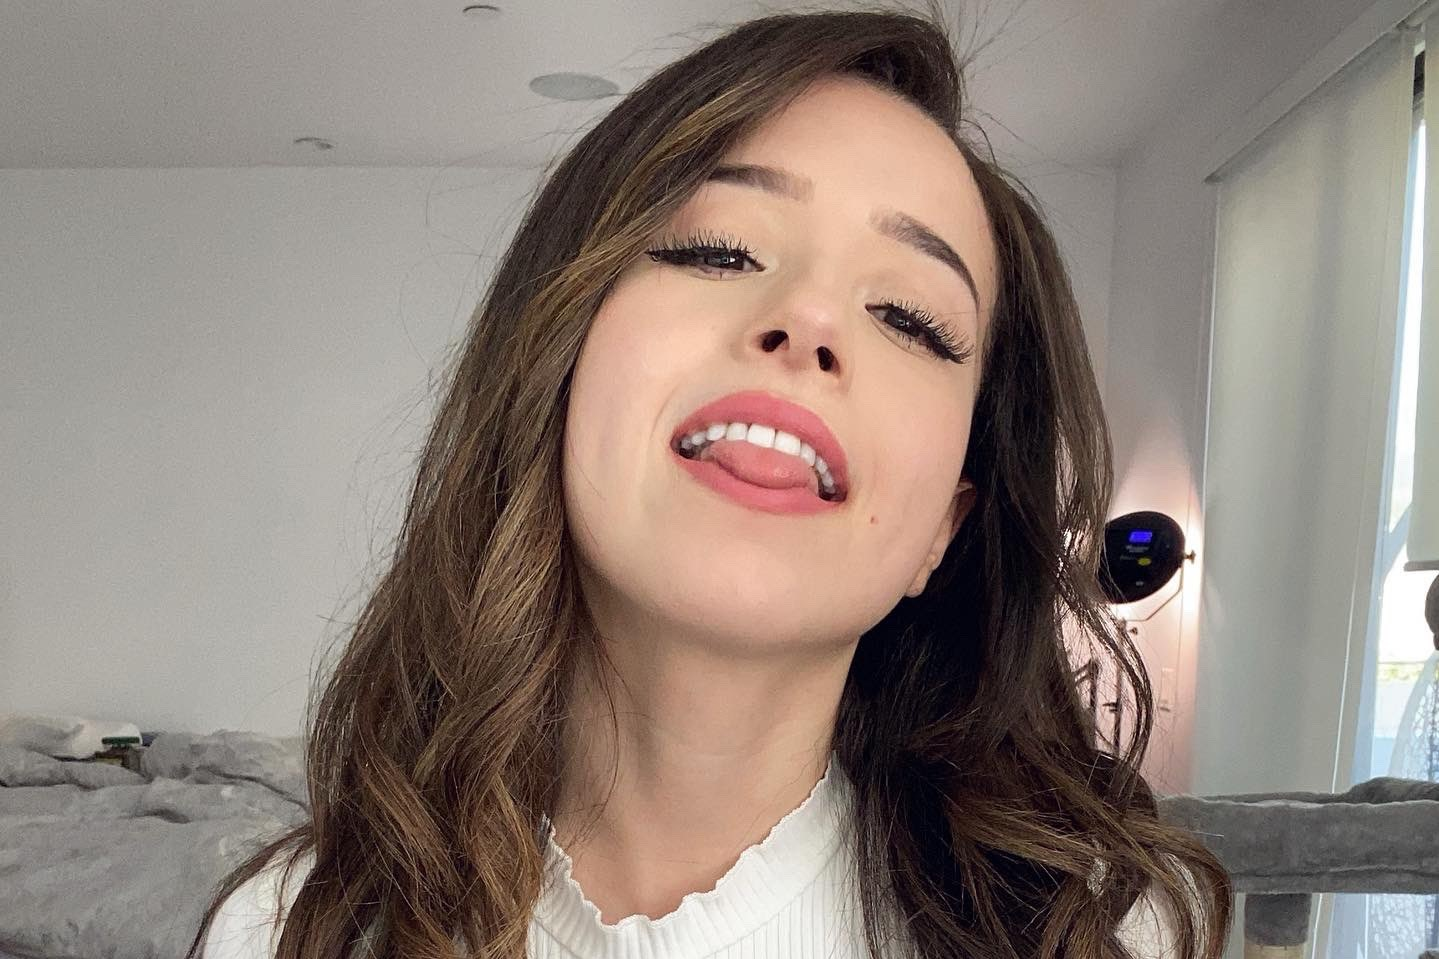 Pokimane gets plenty of donations every broadcast, but was blindsided by a refund request in her latest stream.